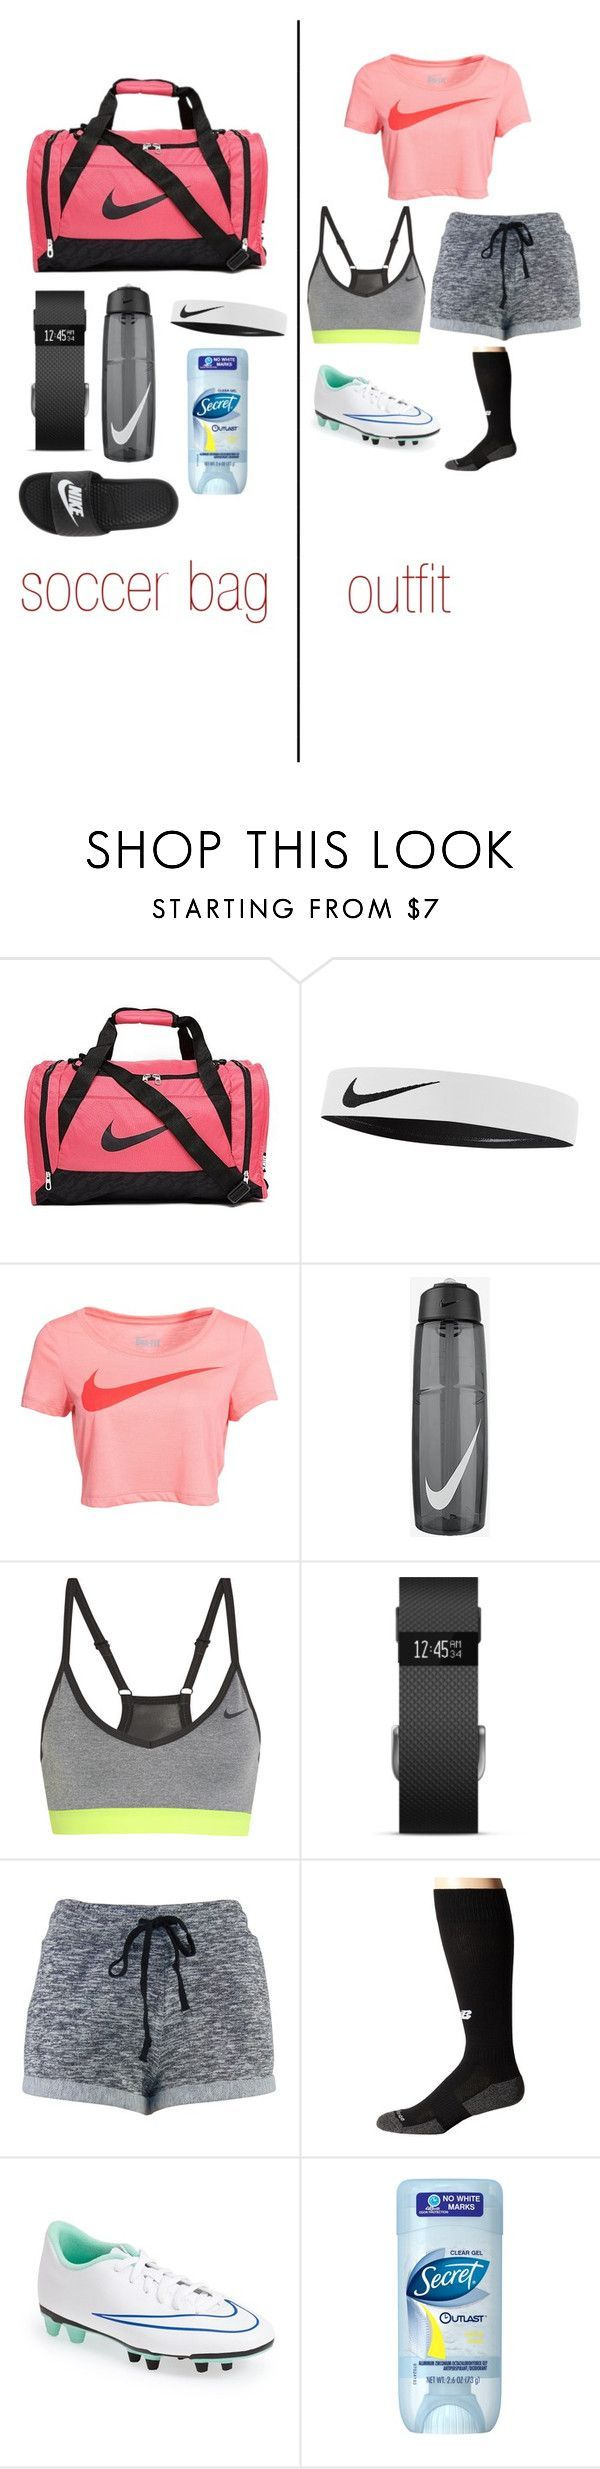 """soccer outfit and bag essentials"" by cass-mccullough ❤ liked on Polyvore featuring NIKE, Fitbit and New Balance"